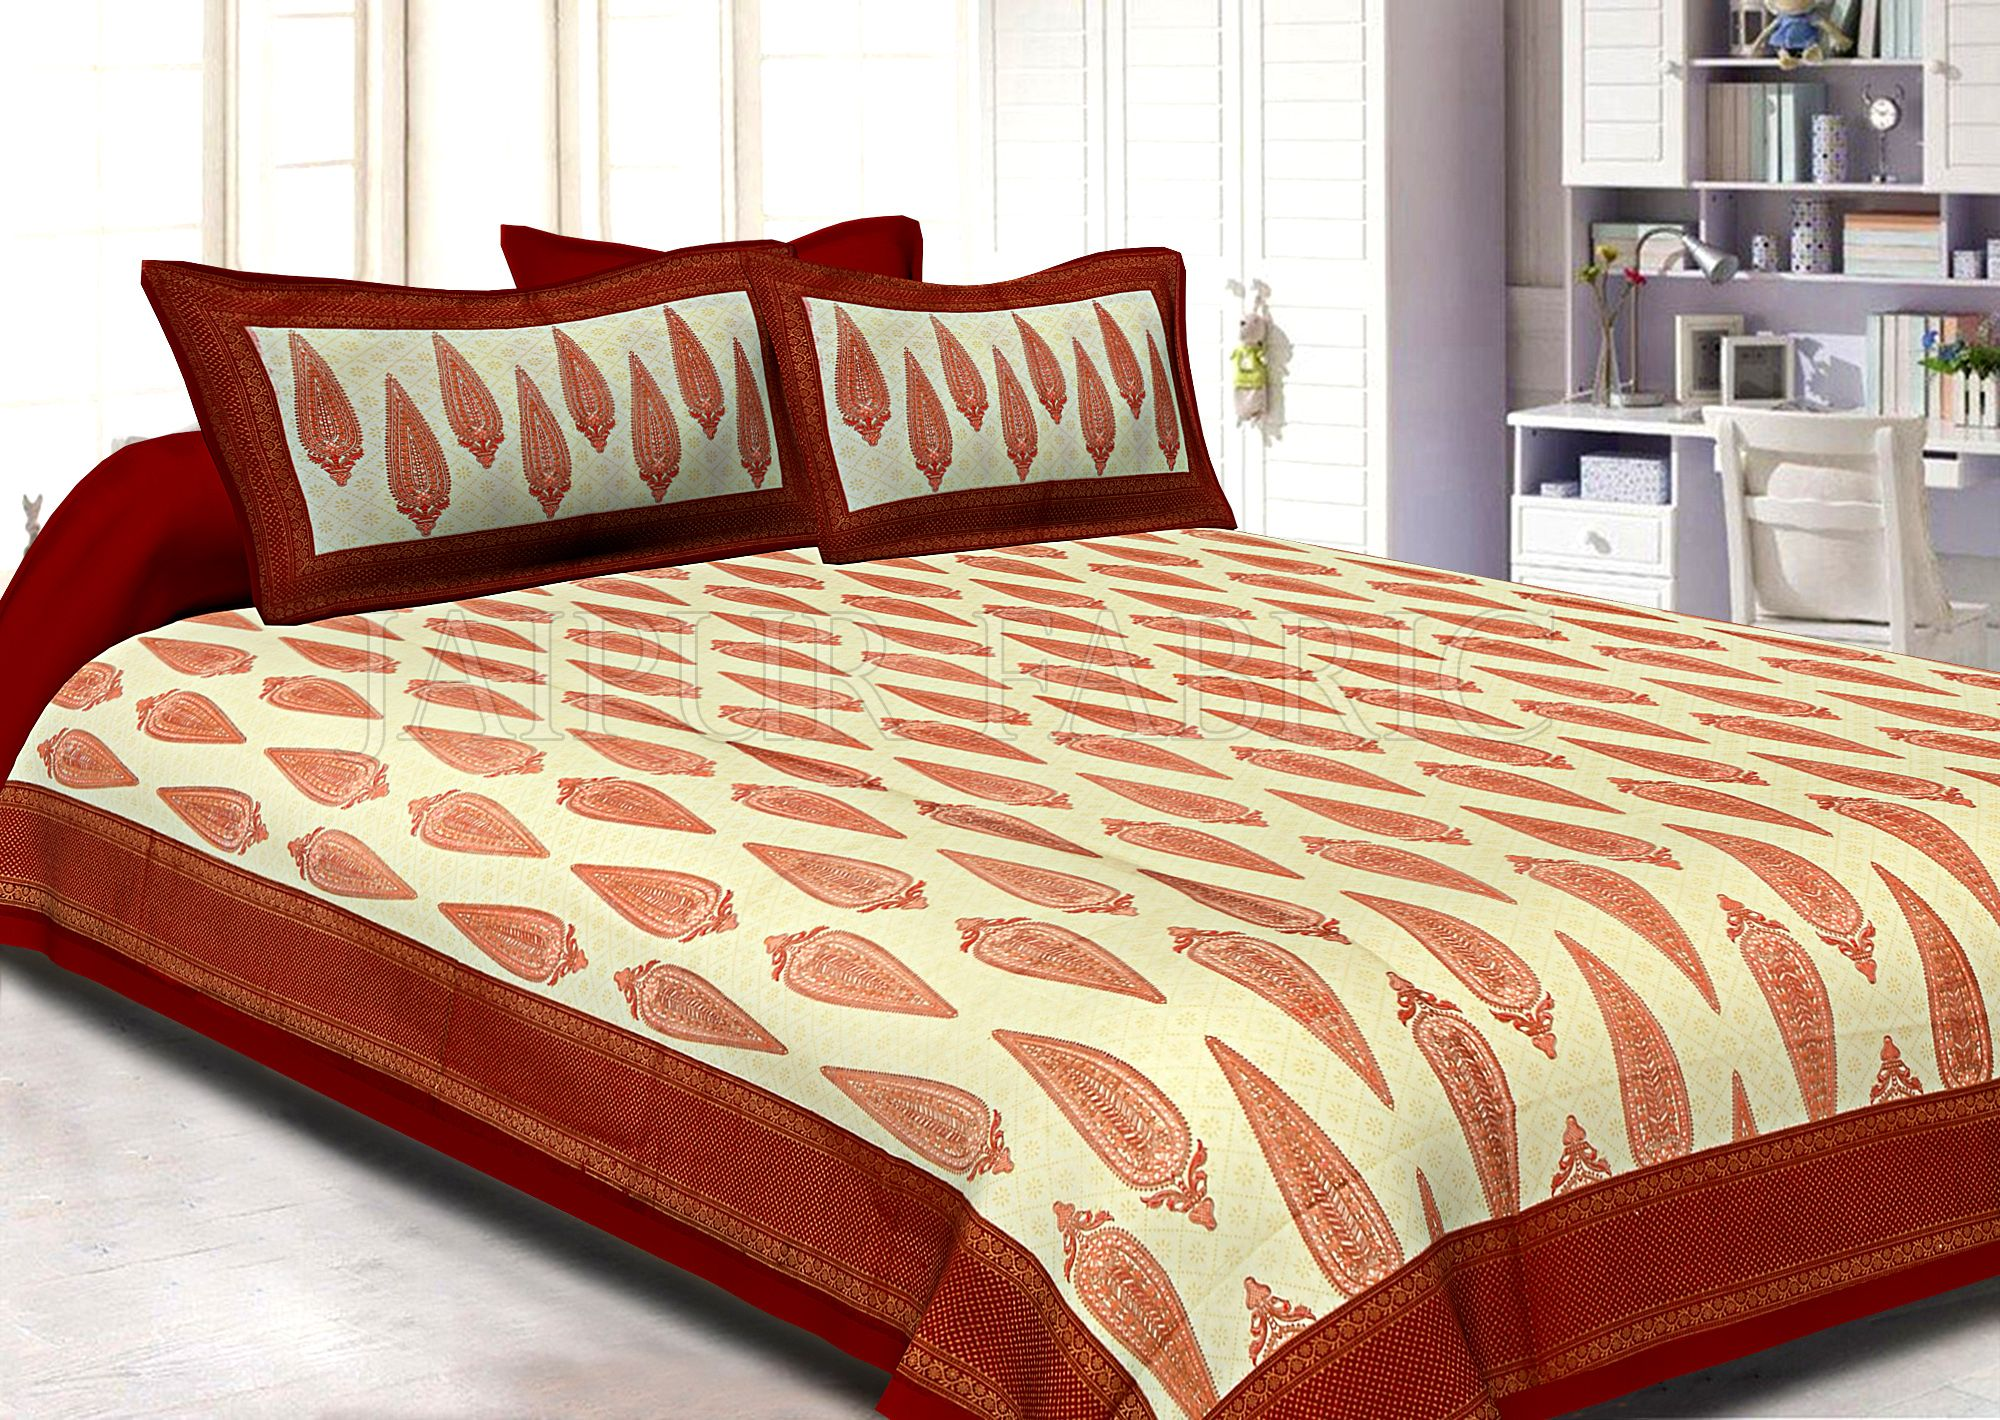 Maroon Border Cream Base Long Leaf Pattern With Golden Print Super Fine Cotton Double Bedsheet